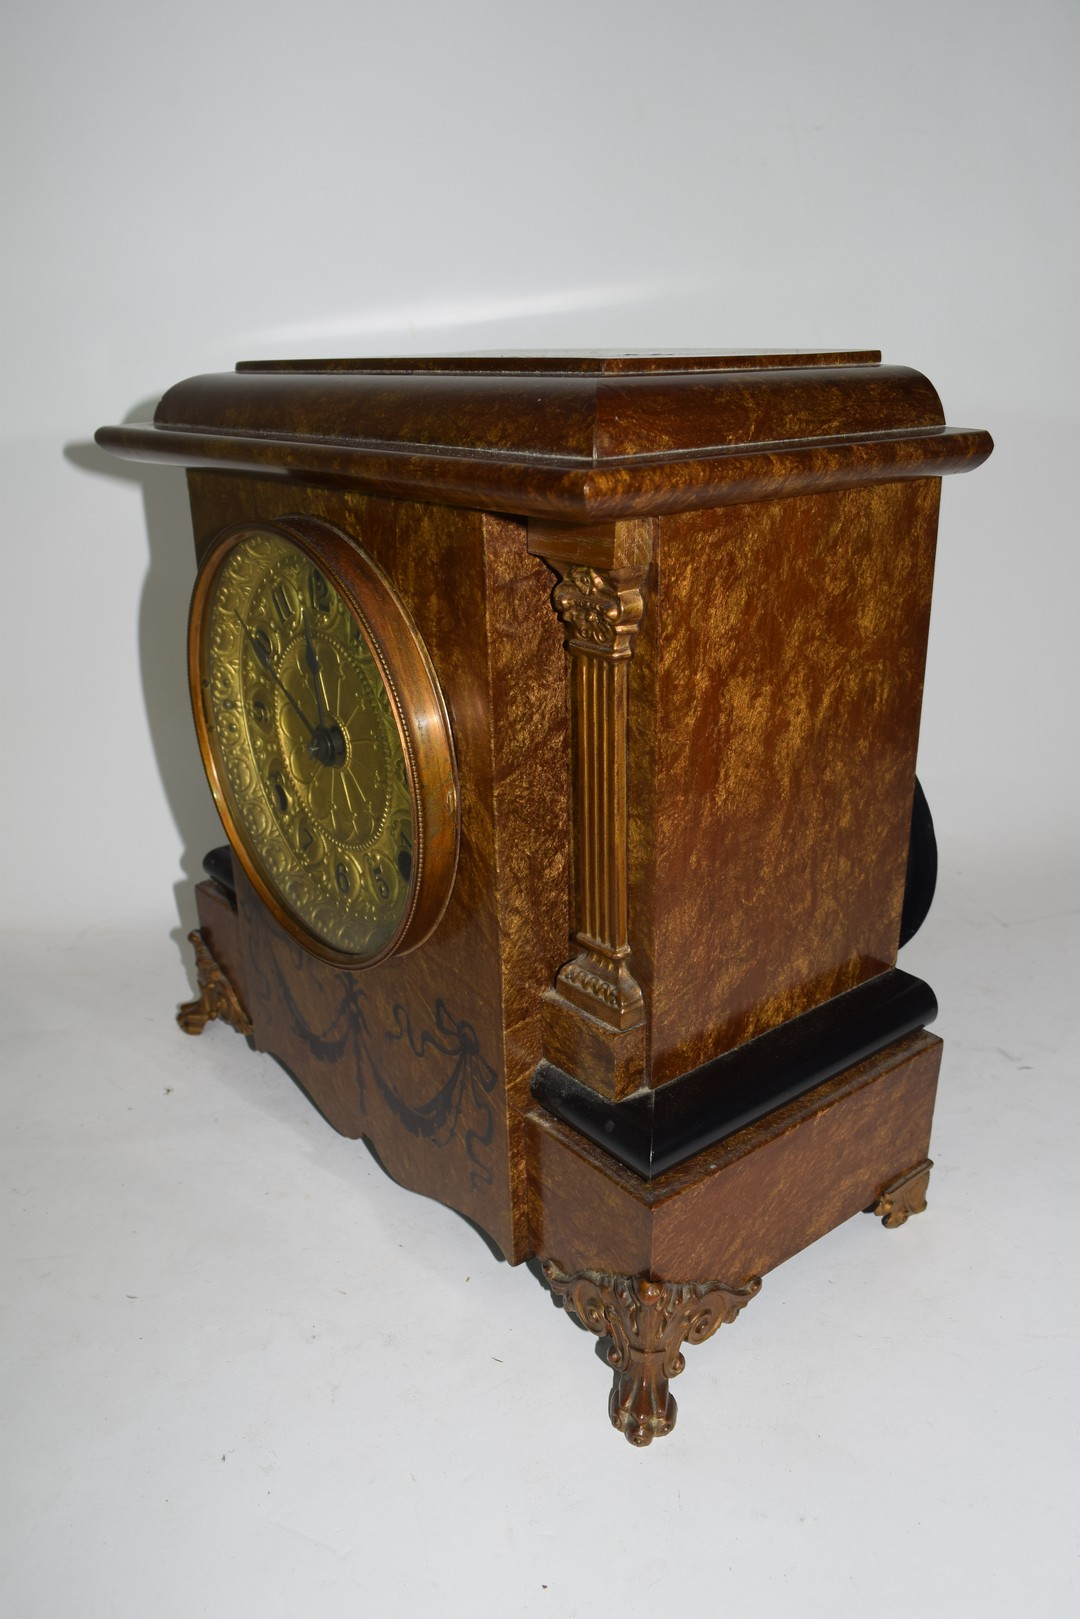 Early 20th century mantel clock - Image 3 of 3